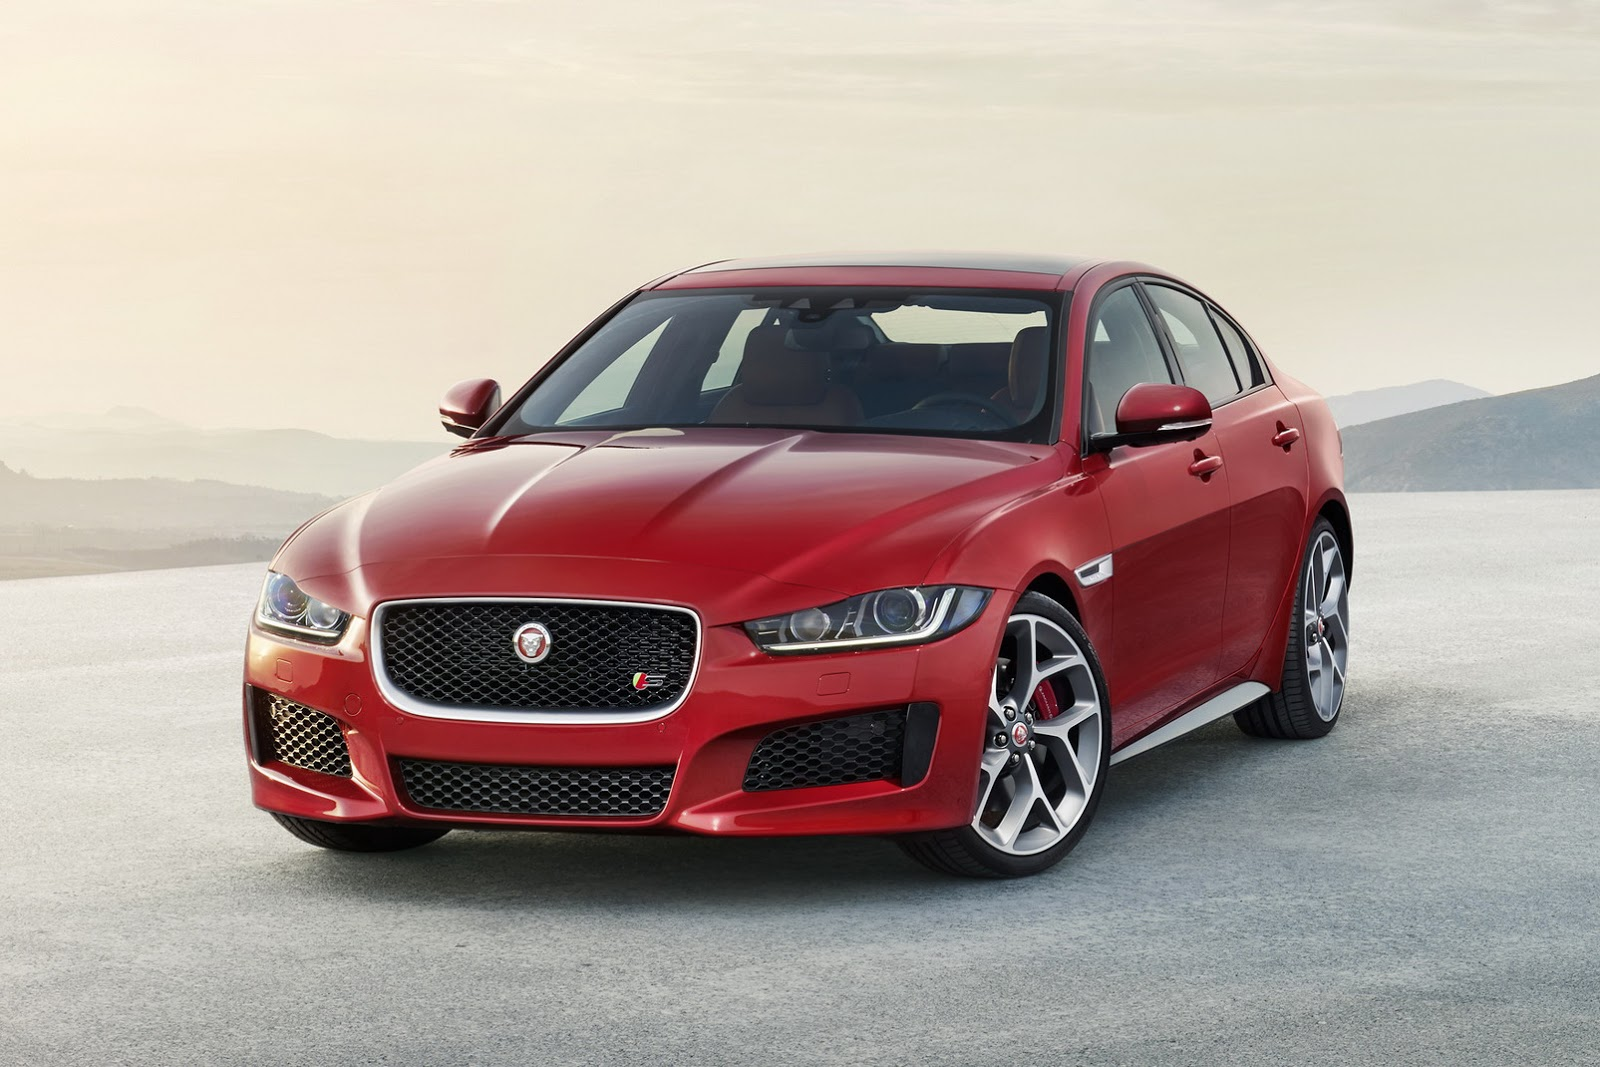 new 2016 jaguar xe sports saloon 52 hd photos and full details updated carscoops. Black Bedroom Furniture Sets. Home Design Ideas